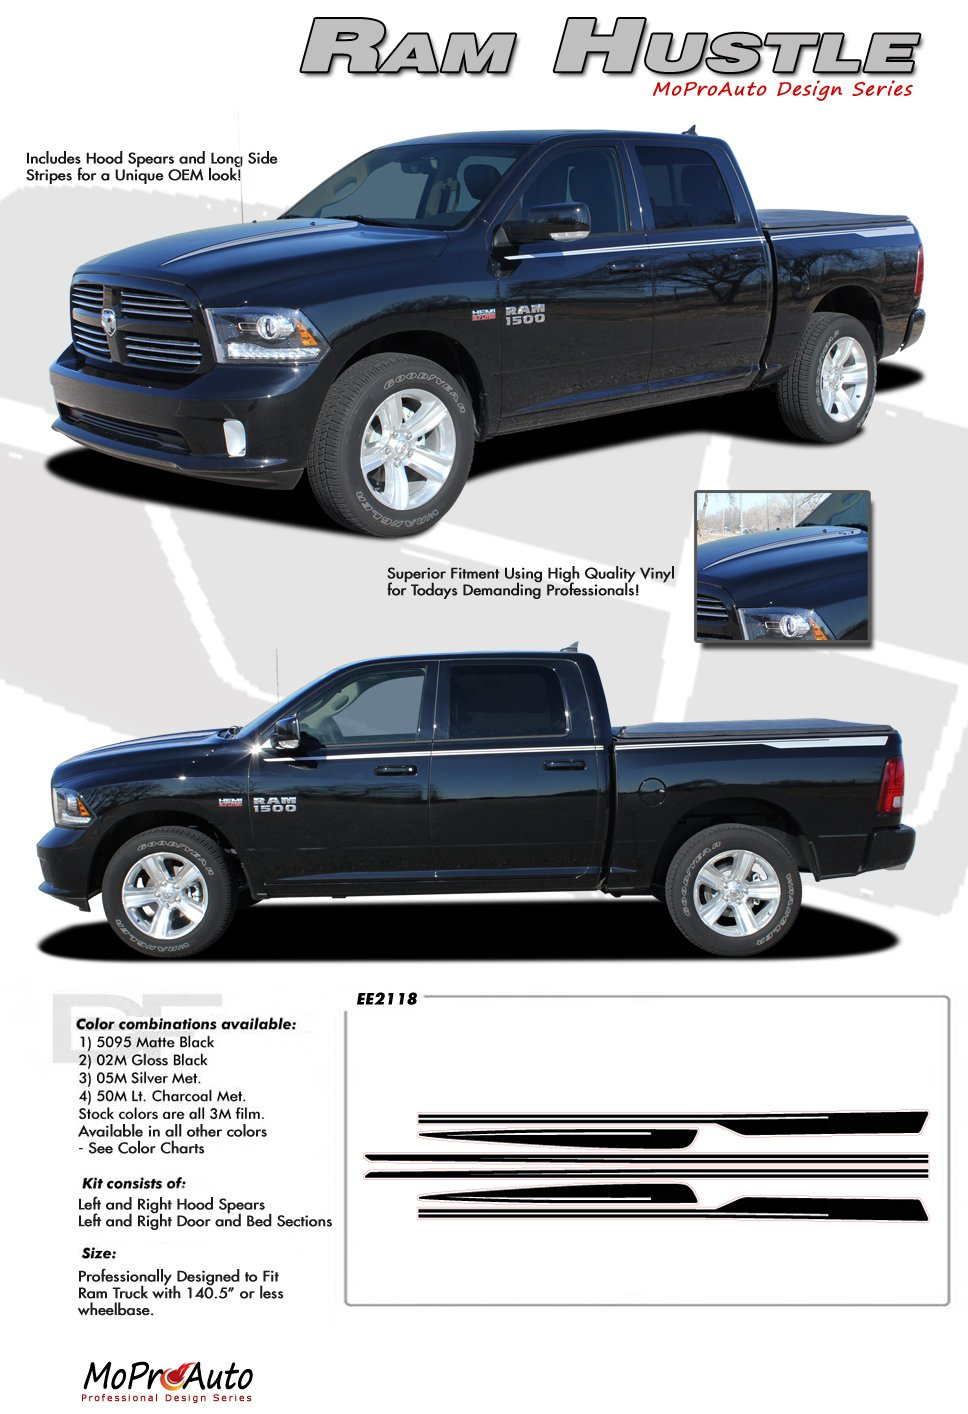 ram hustle 2009 2010 2011 2012 2013 dodge ram hood. Black Bedroom Furniture Sets. Home Design Ideas